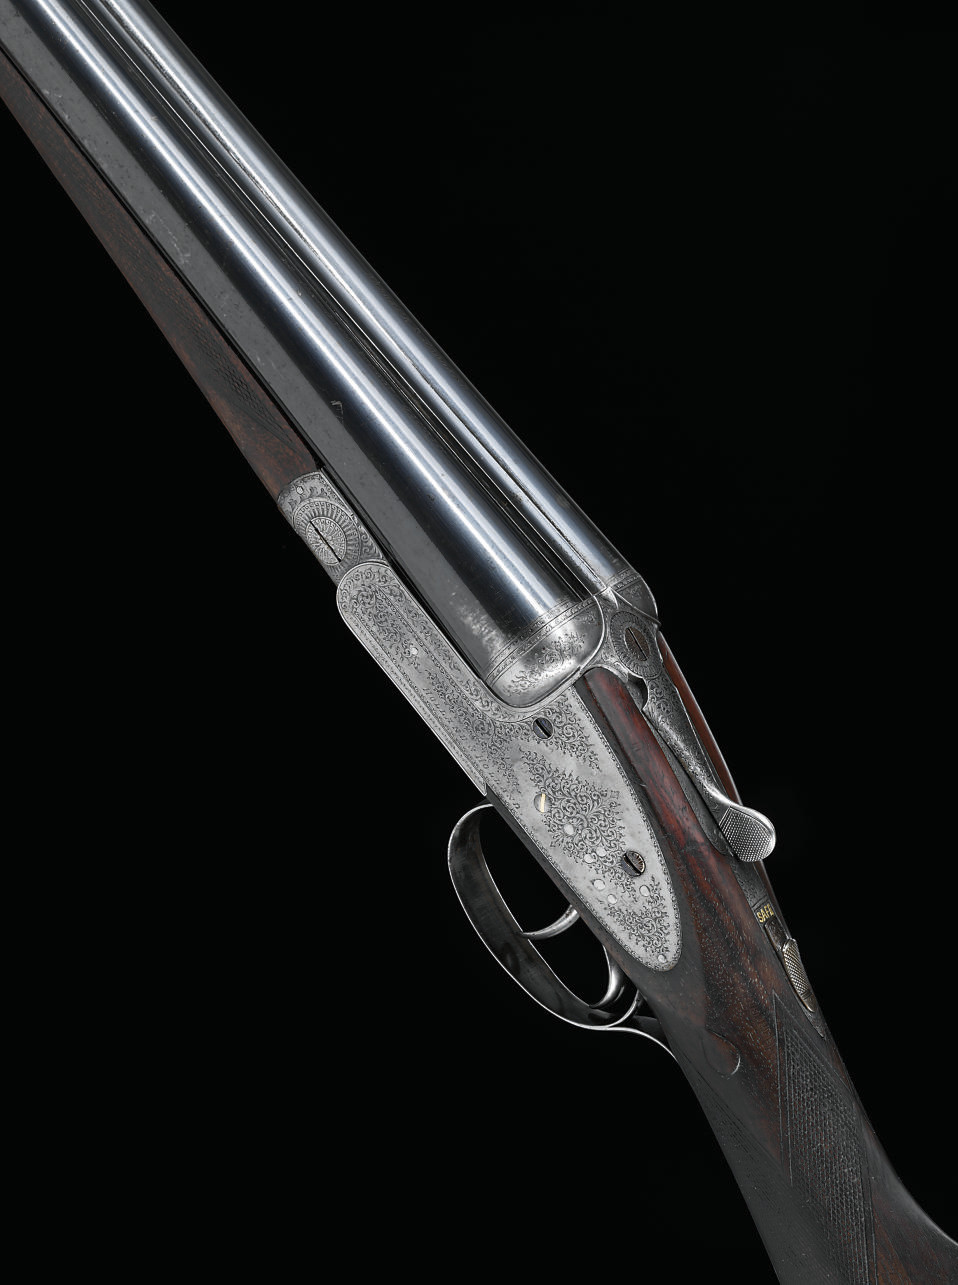 A 12-BORE 'ROYAL MODEL' SIDELOCK EJECTOR GUN BY HOLLAND & HOLLAND, NO. 20815